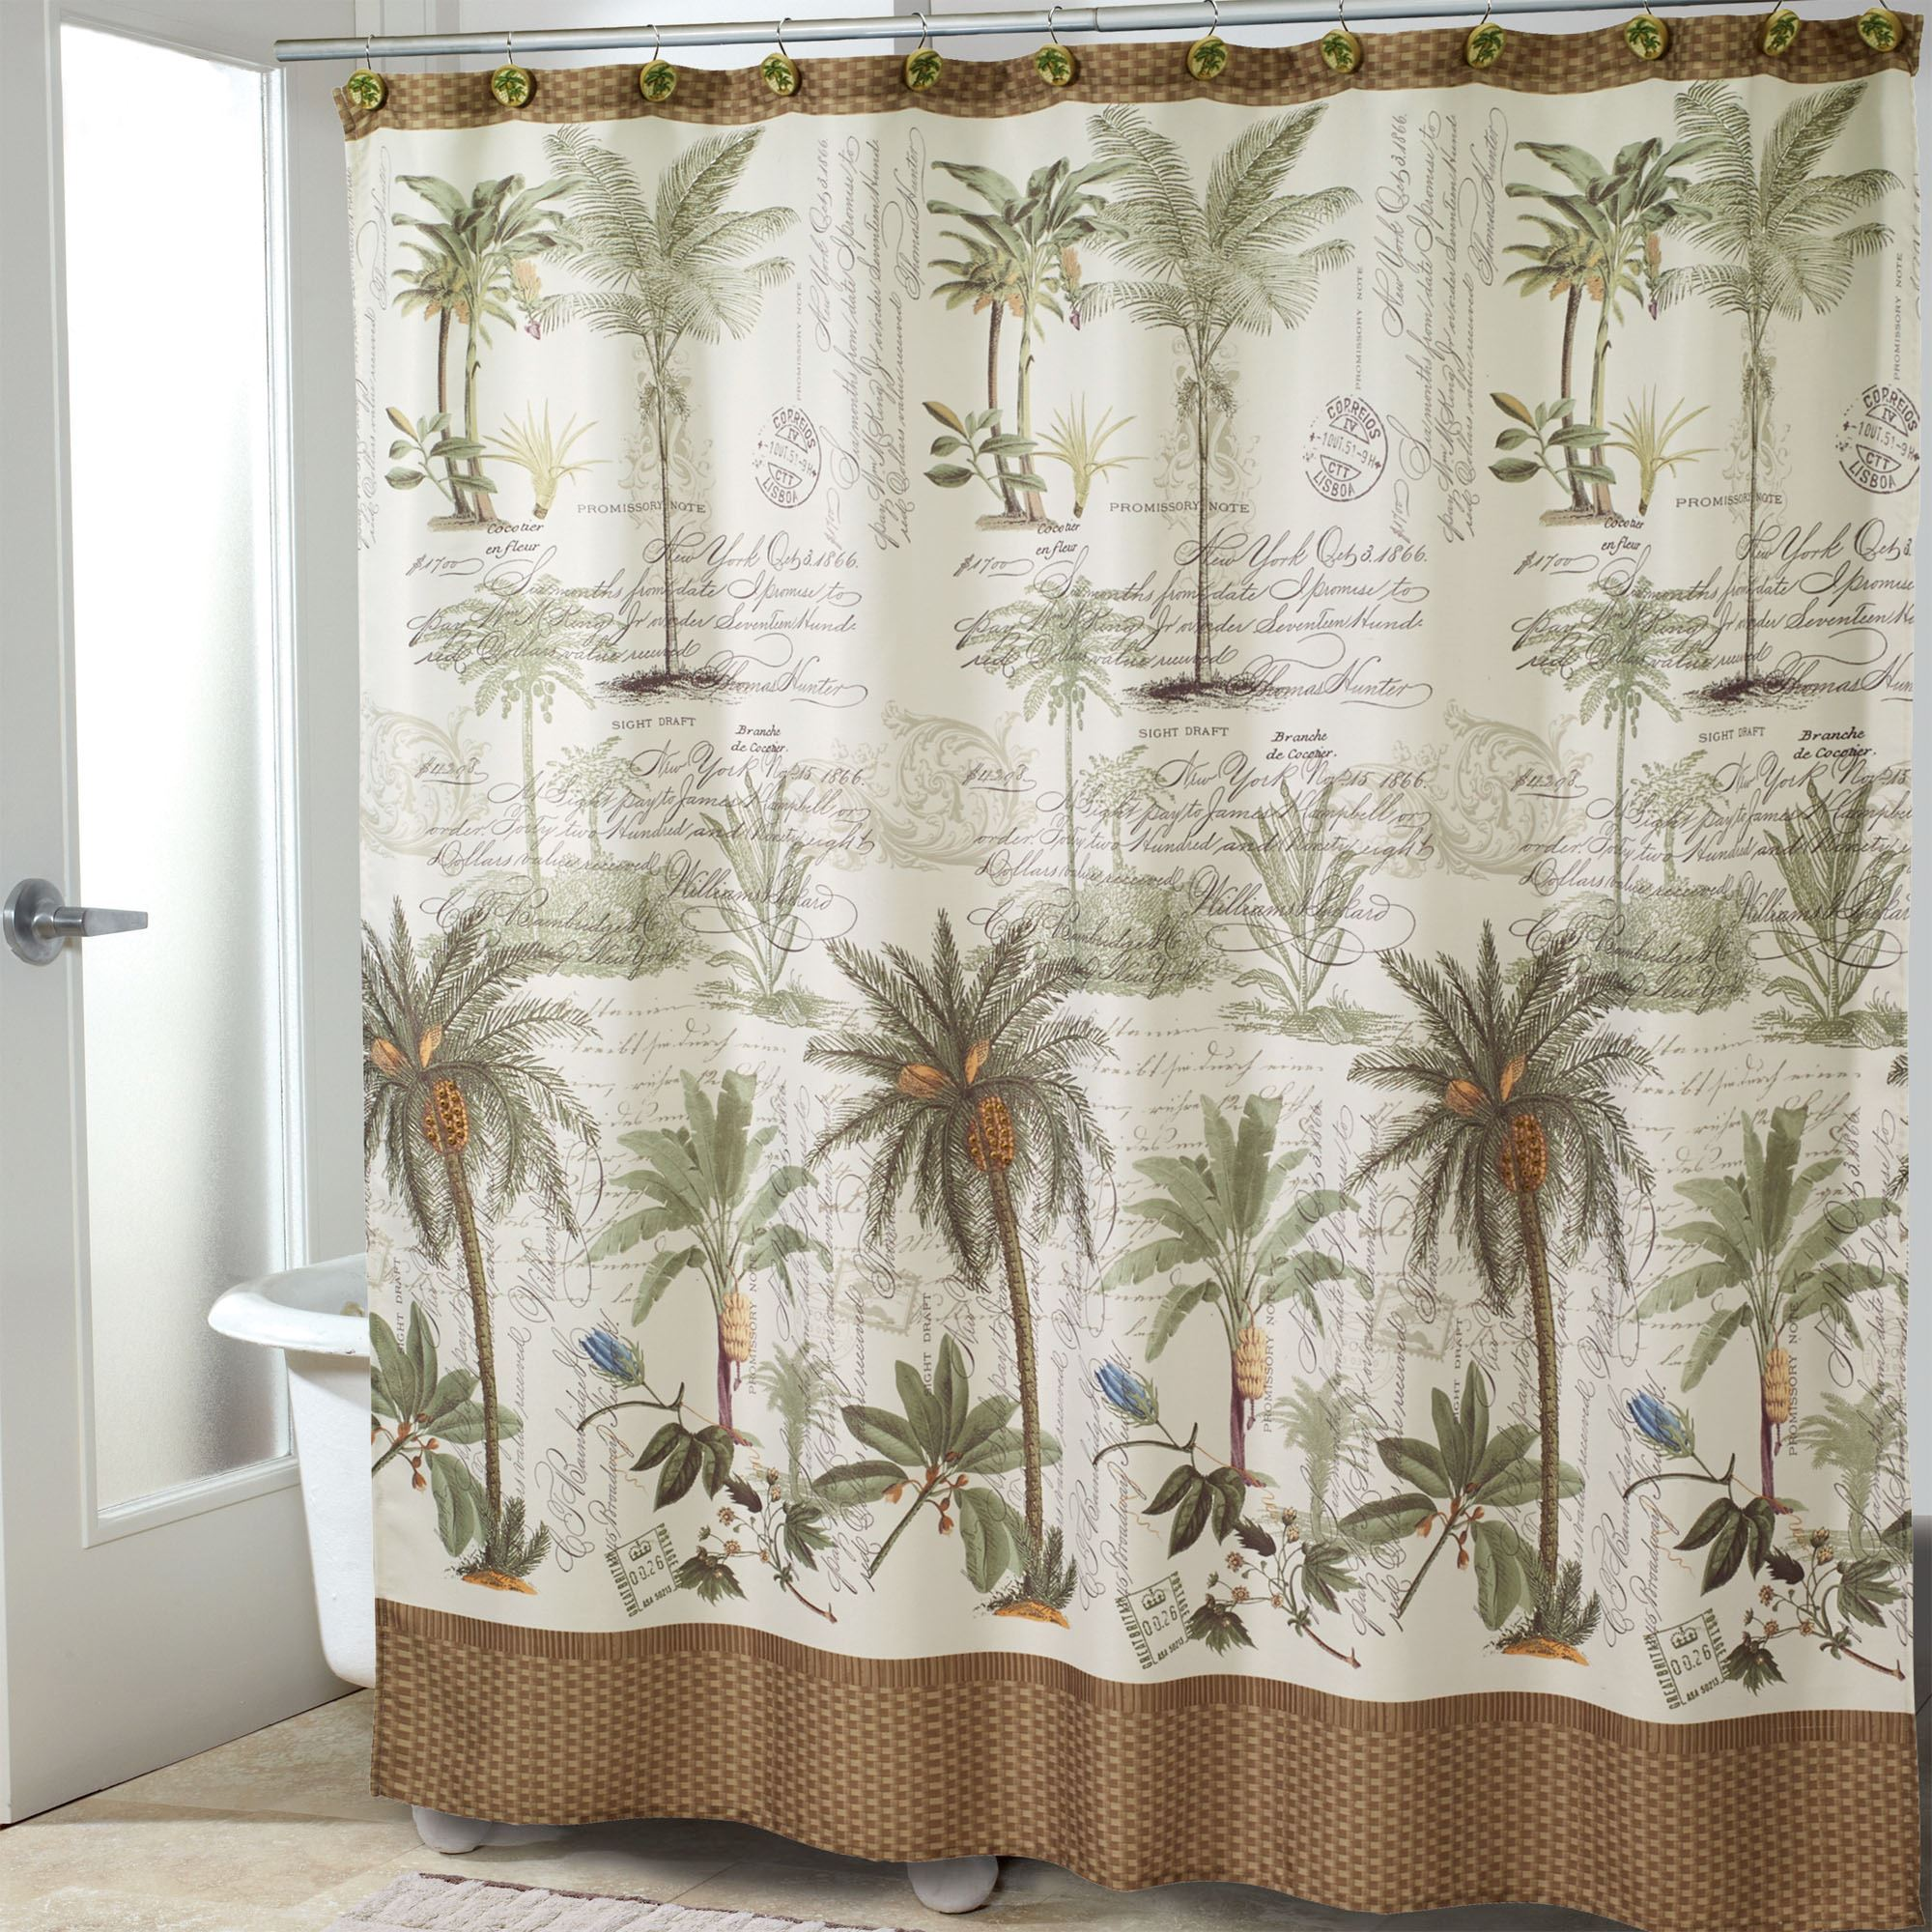 Colony Palm Tree Tropical Shower Curtain